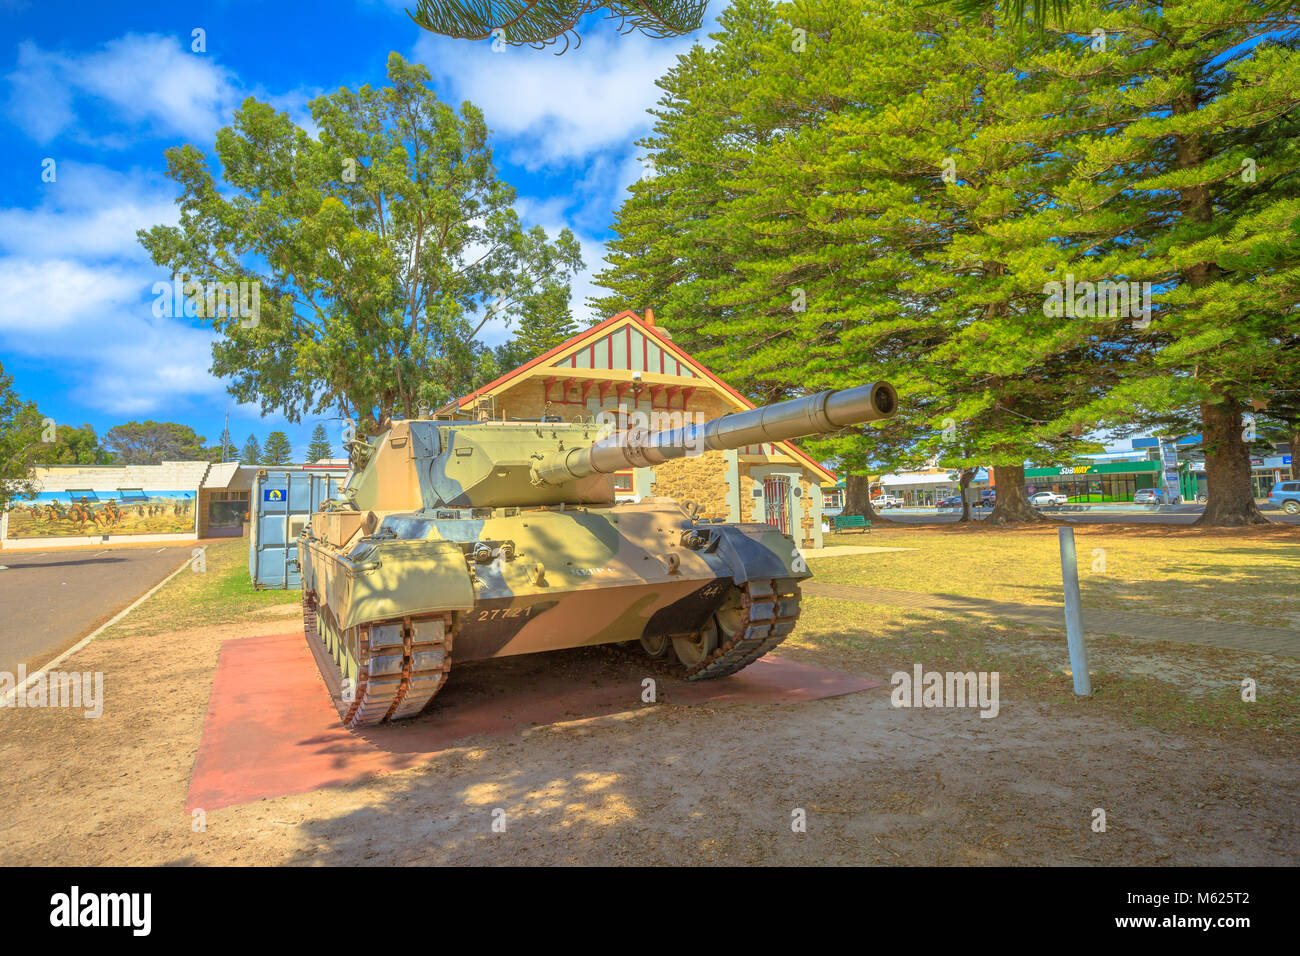 Esperance, Australia - Dec 26, 2017: Leopard Tank in foreground near War Memorial and RSL building on Dempster Street - Stock Image